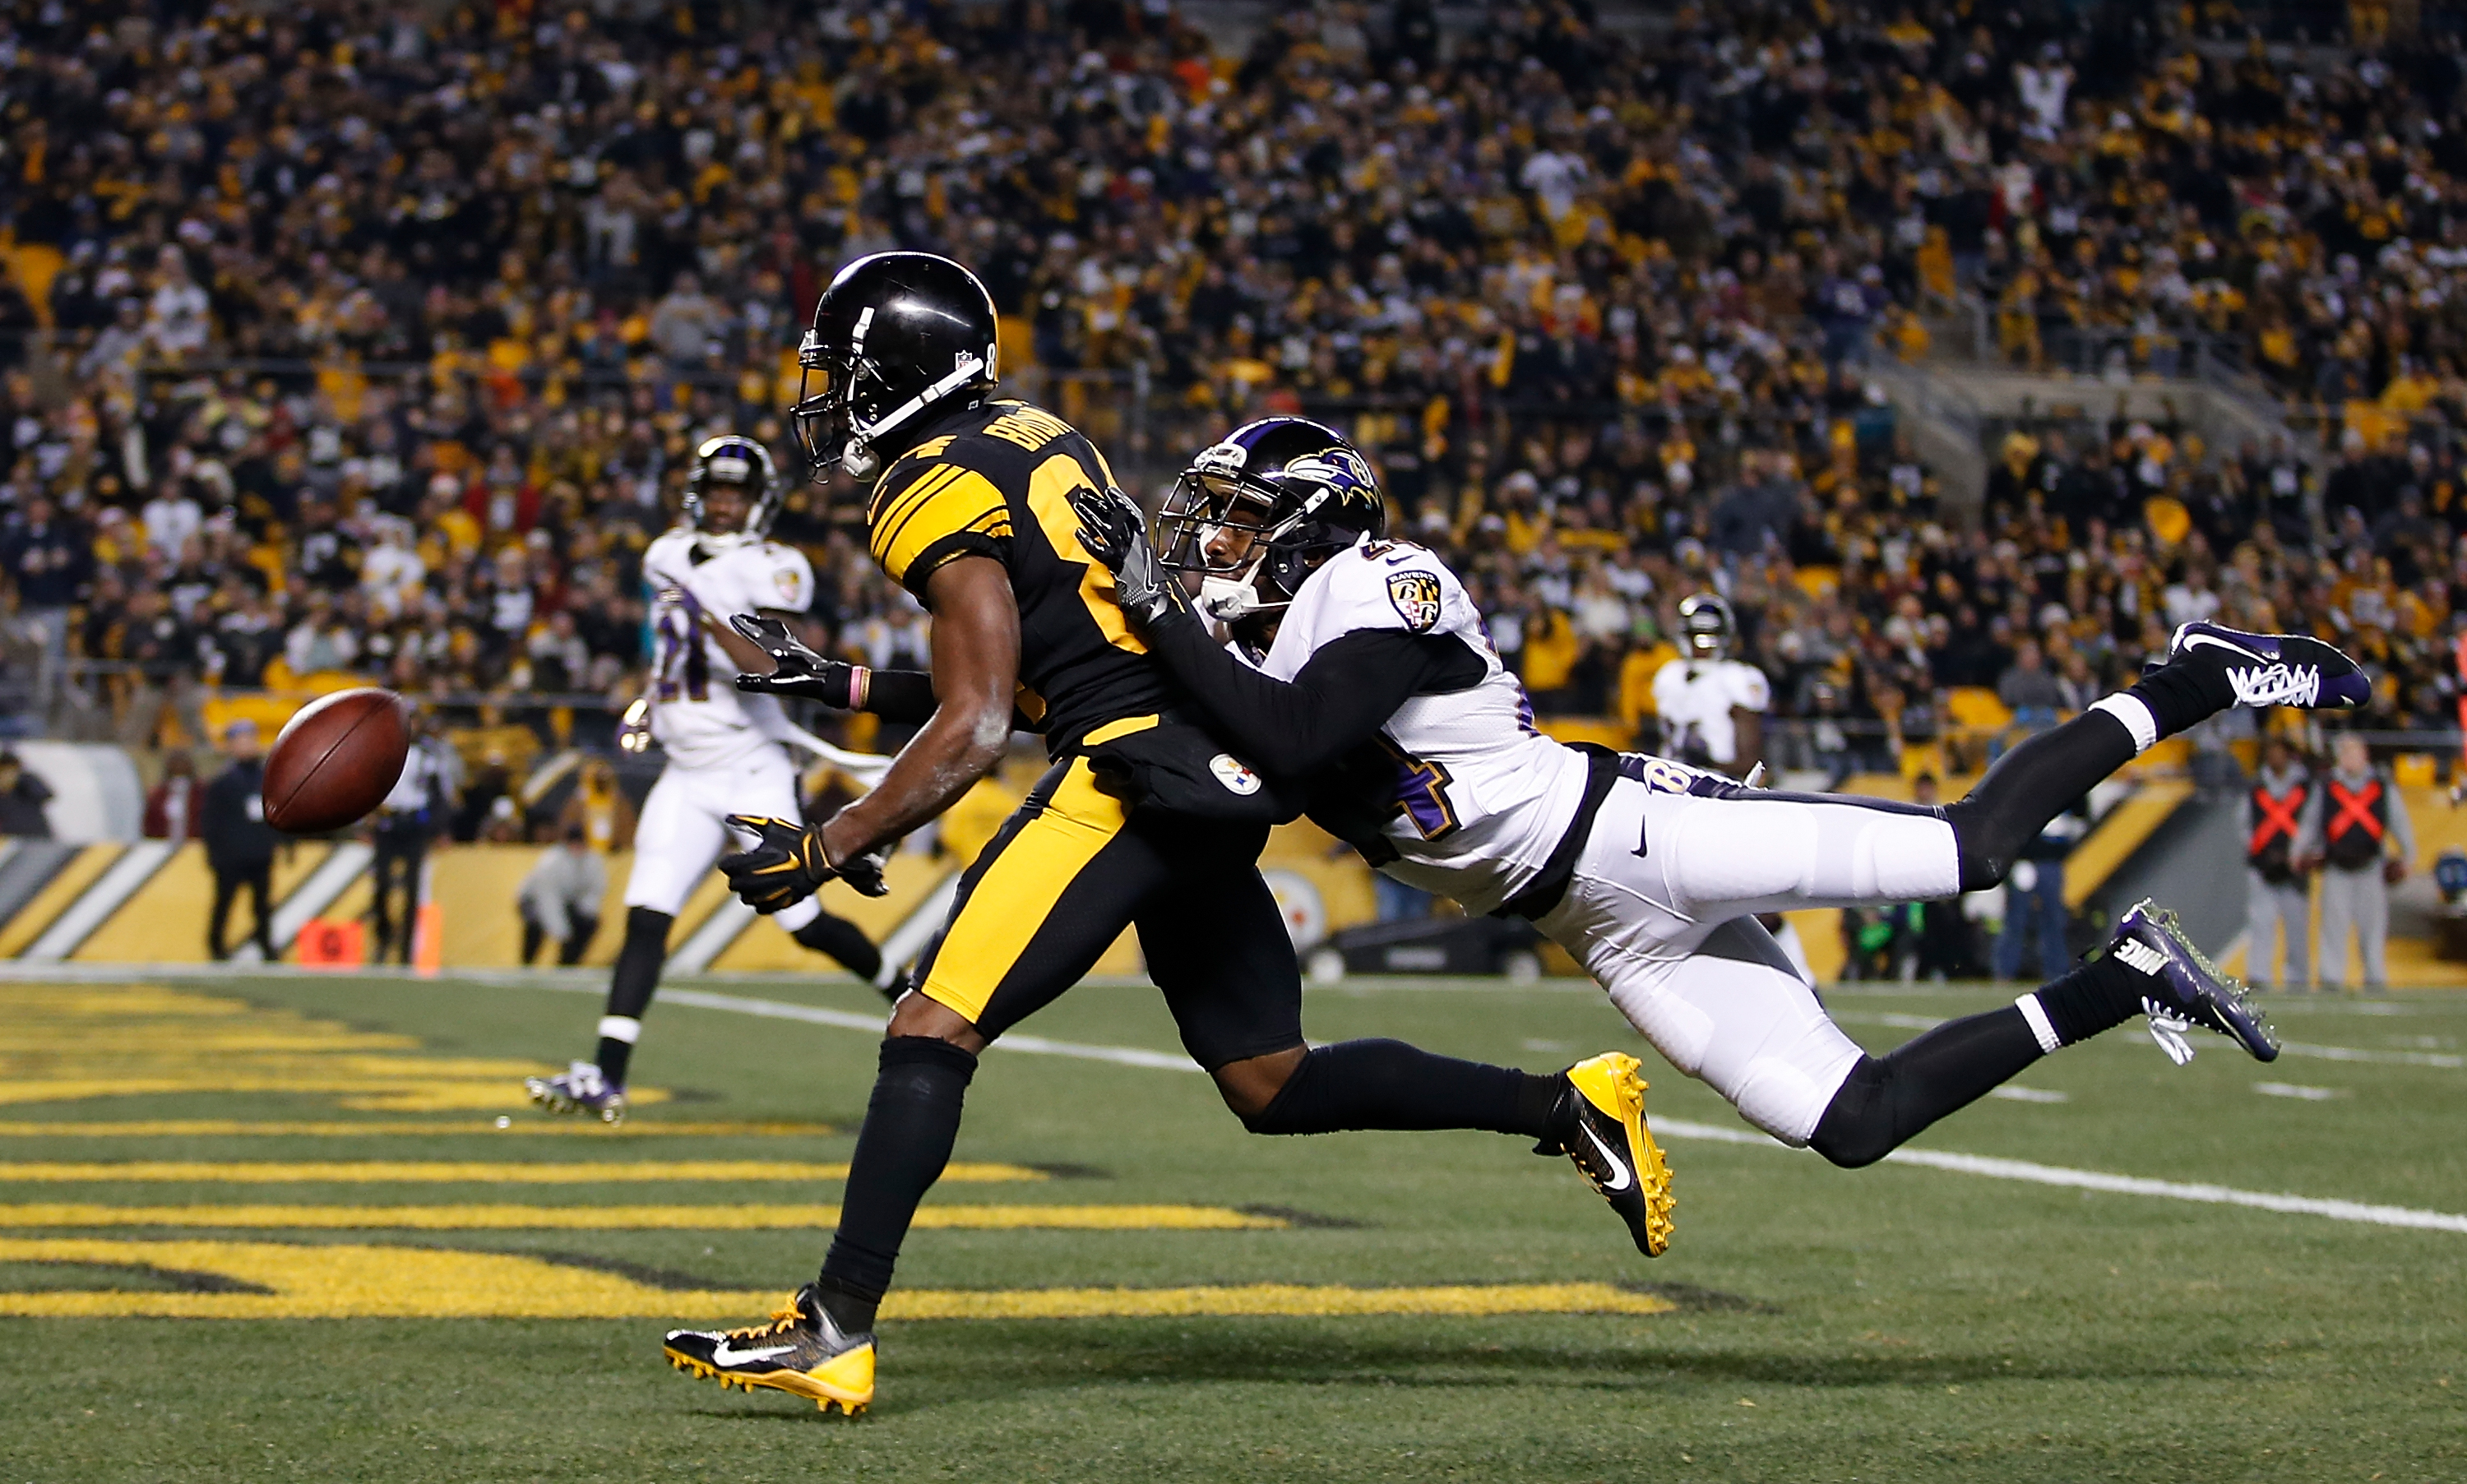 Antonio Brown #84 of the Pittsburgh Steelers cannot make a catch while being defended by Shareece Wright #24 of the Baltimore Ravens. (Photo by Justin K. Aller/Getty Images)